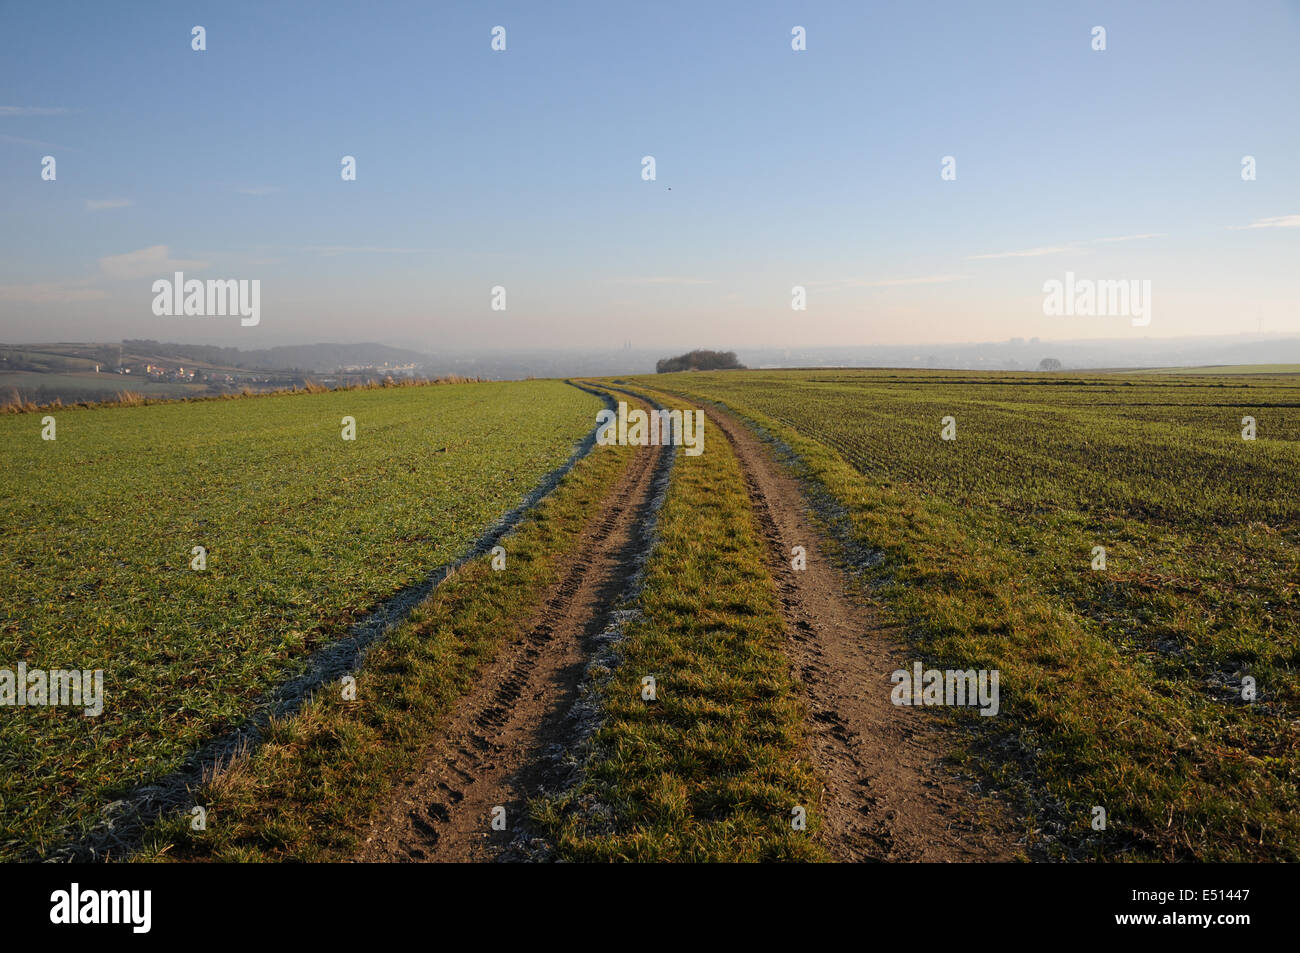 Way in the fields for tractors Stock Photo